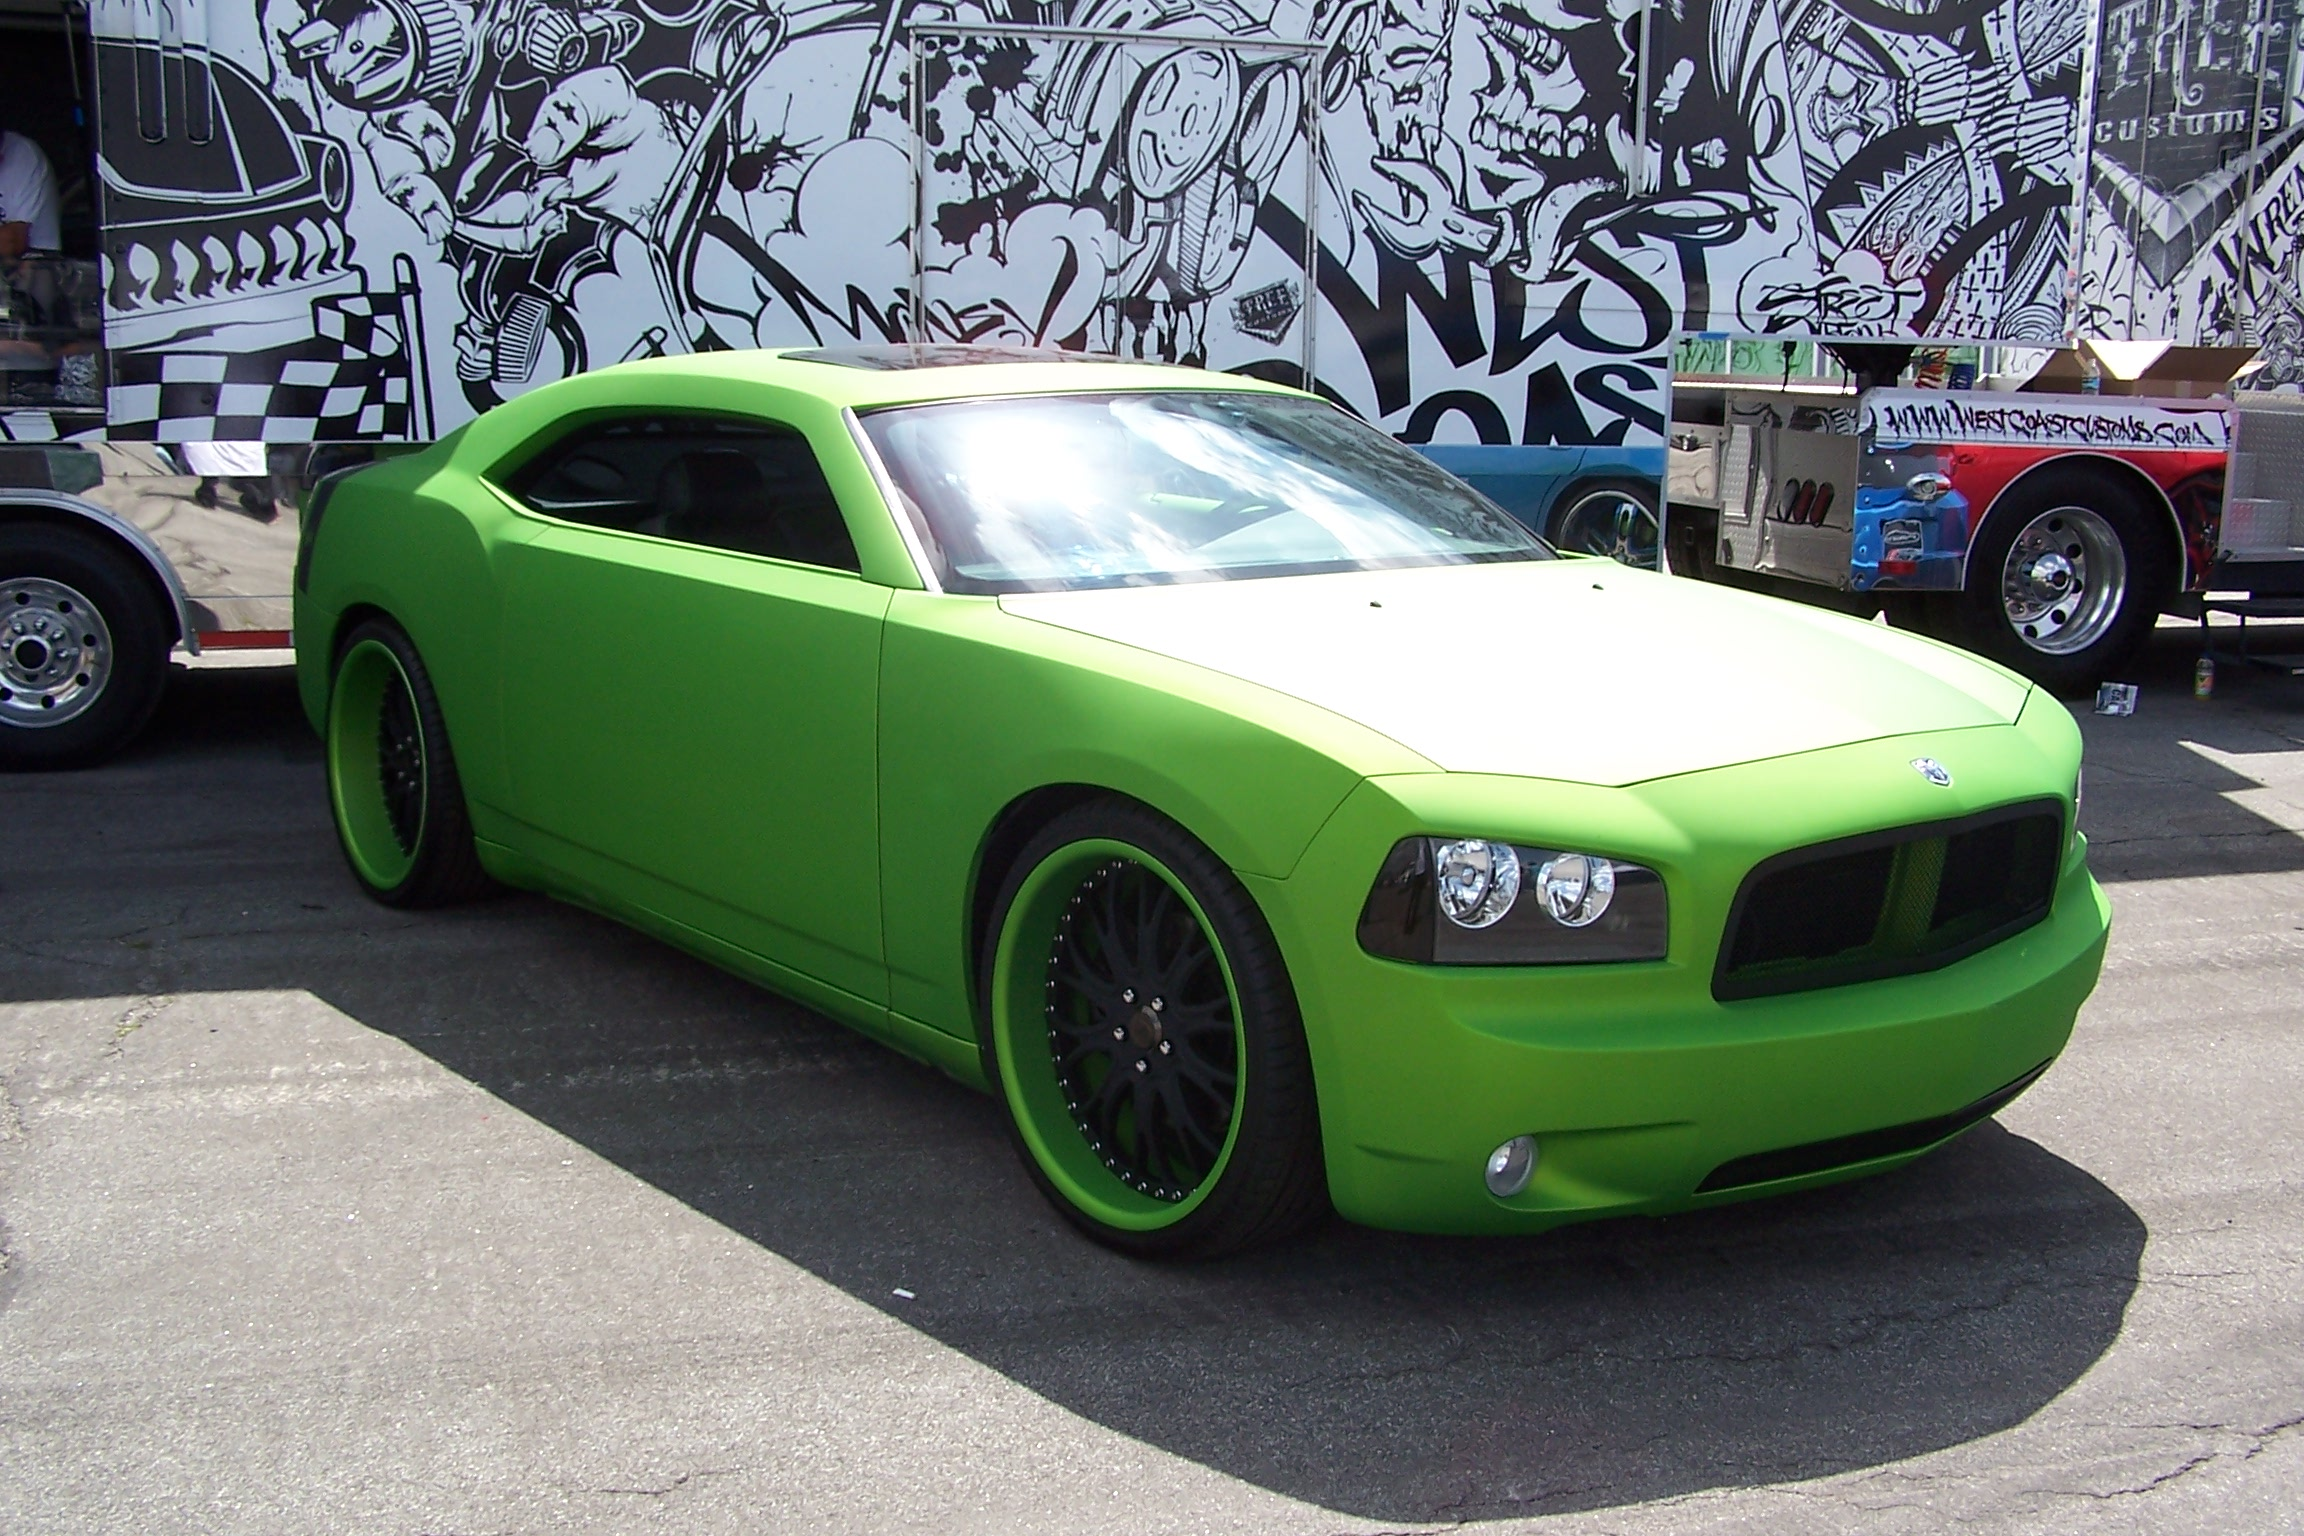 2 Door Charger >> Another 2 Door Charger Conversion By Wcc By Blsdesq On